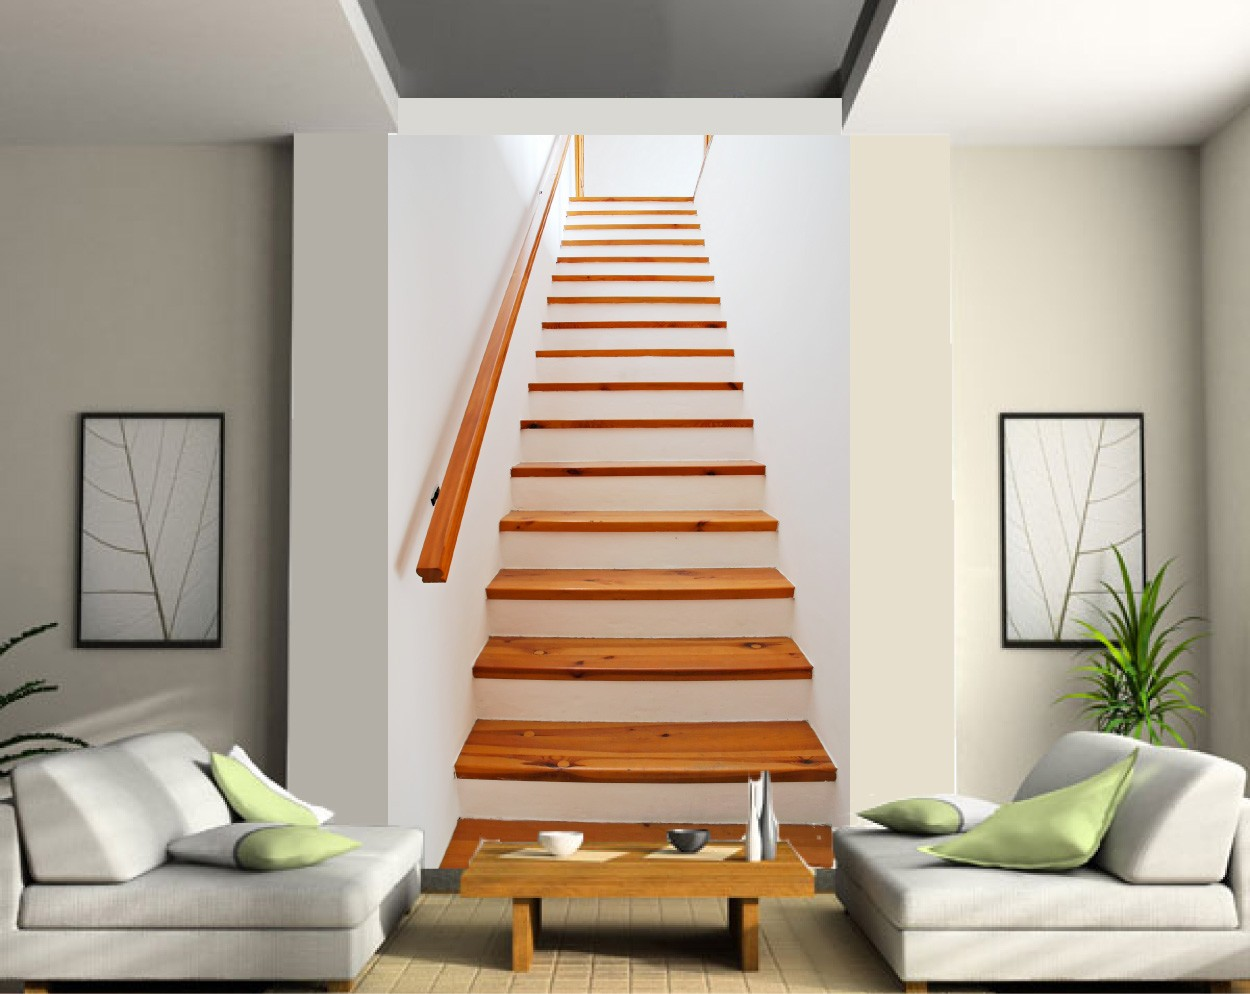 poster mural trompe l oeil fashion designs. Black Bedroom Furniture Sets. Home Design Ideas